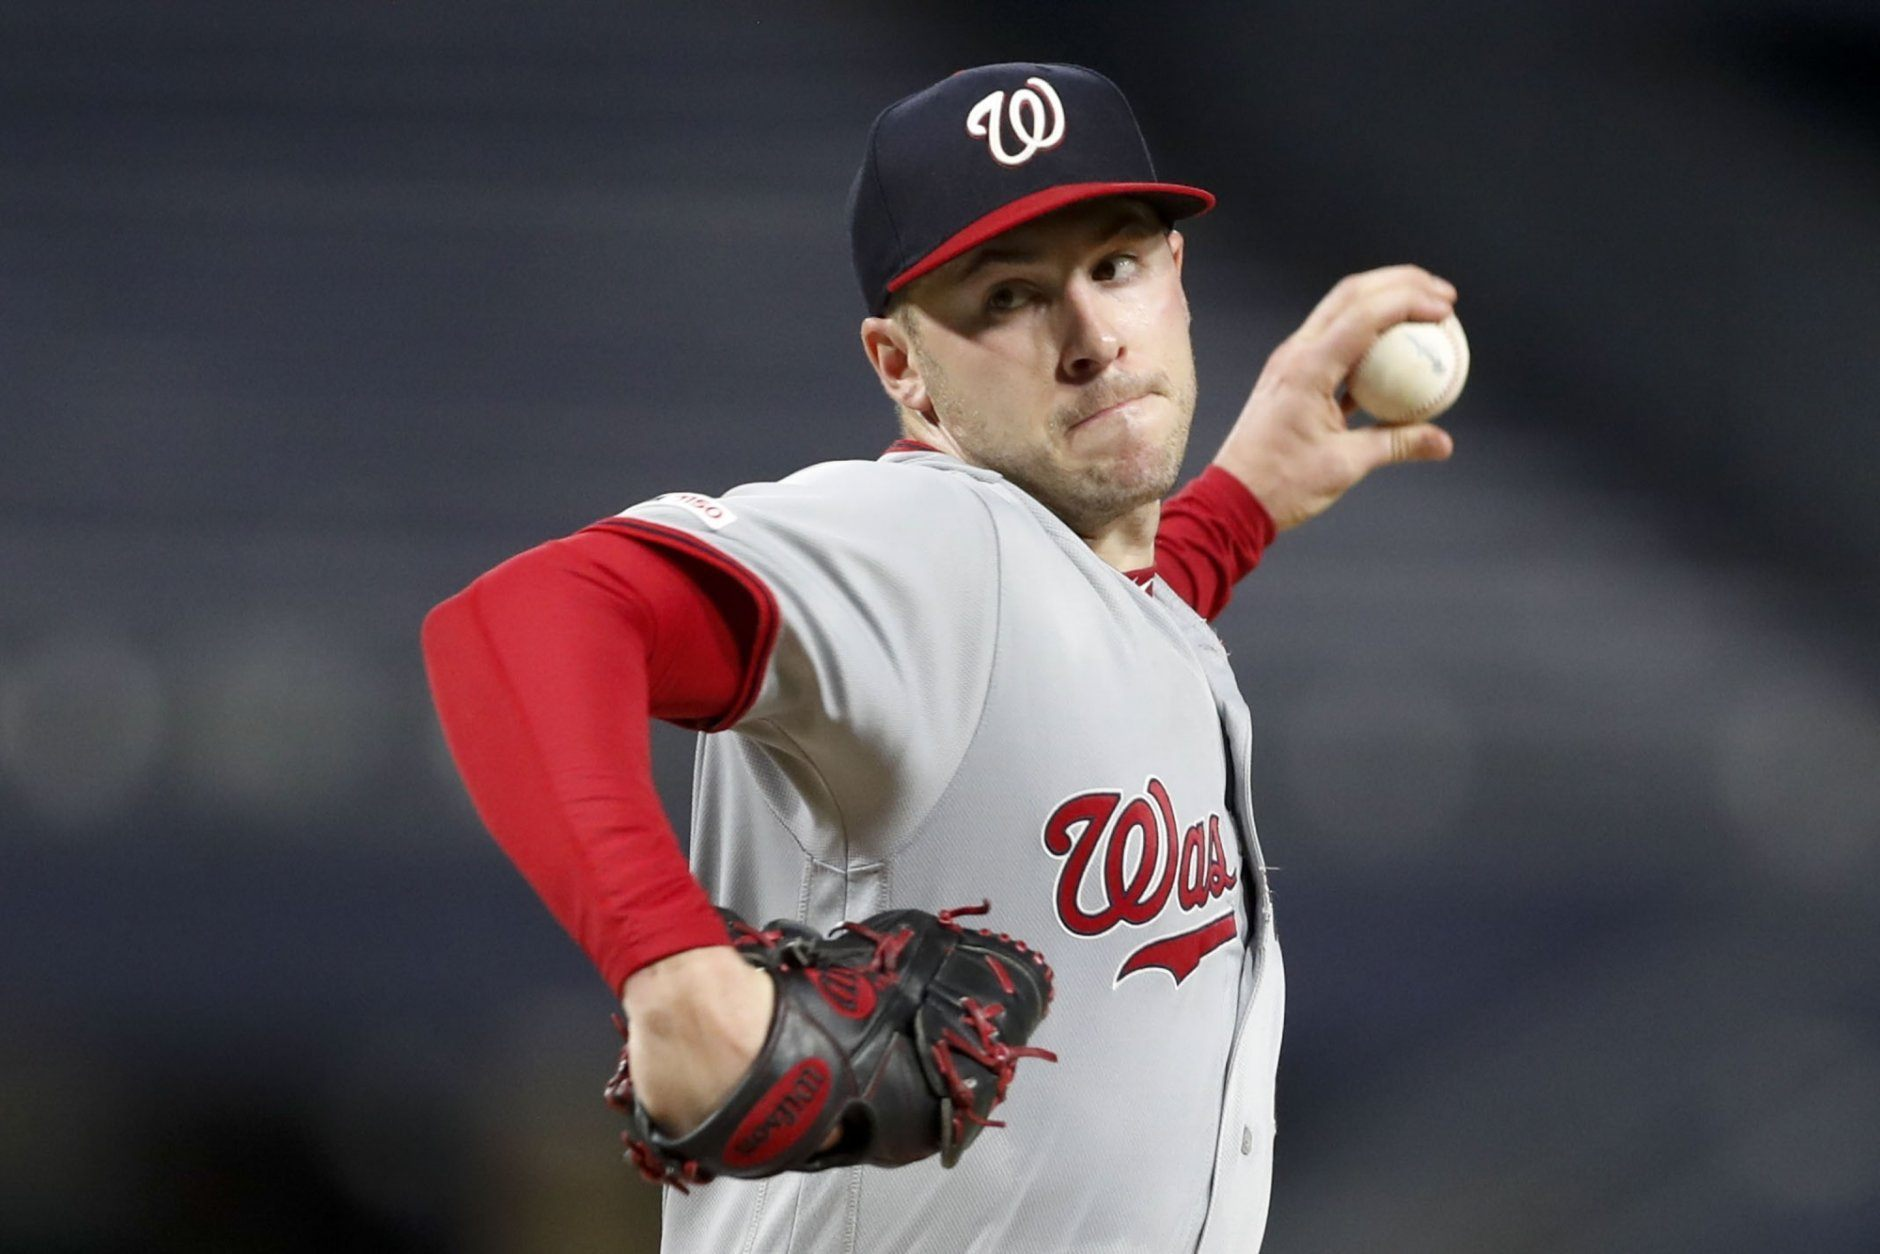 Washington Nationals starting pitcher Patrick Corbin throws to a Pittsburgh Pirates batter during the seventh inning of a baseball game Wednesday, Aug. 21, 2019, in Pittsburgh. (AP Photo/Keith Srakocic)